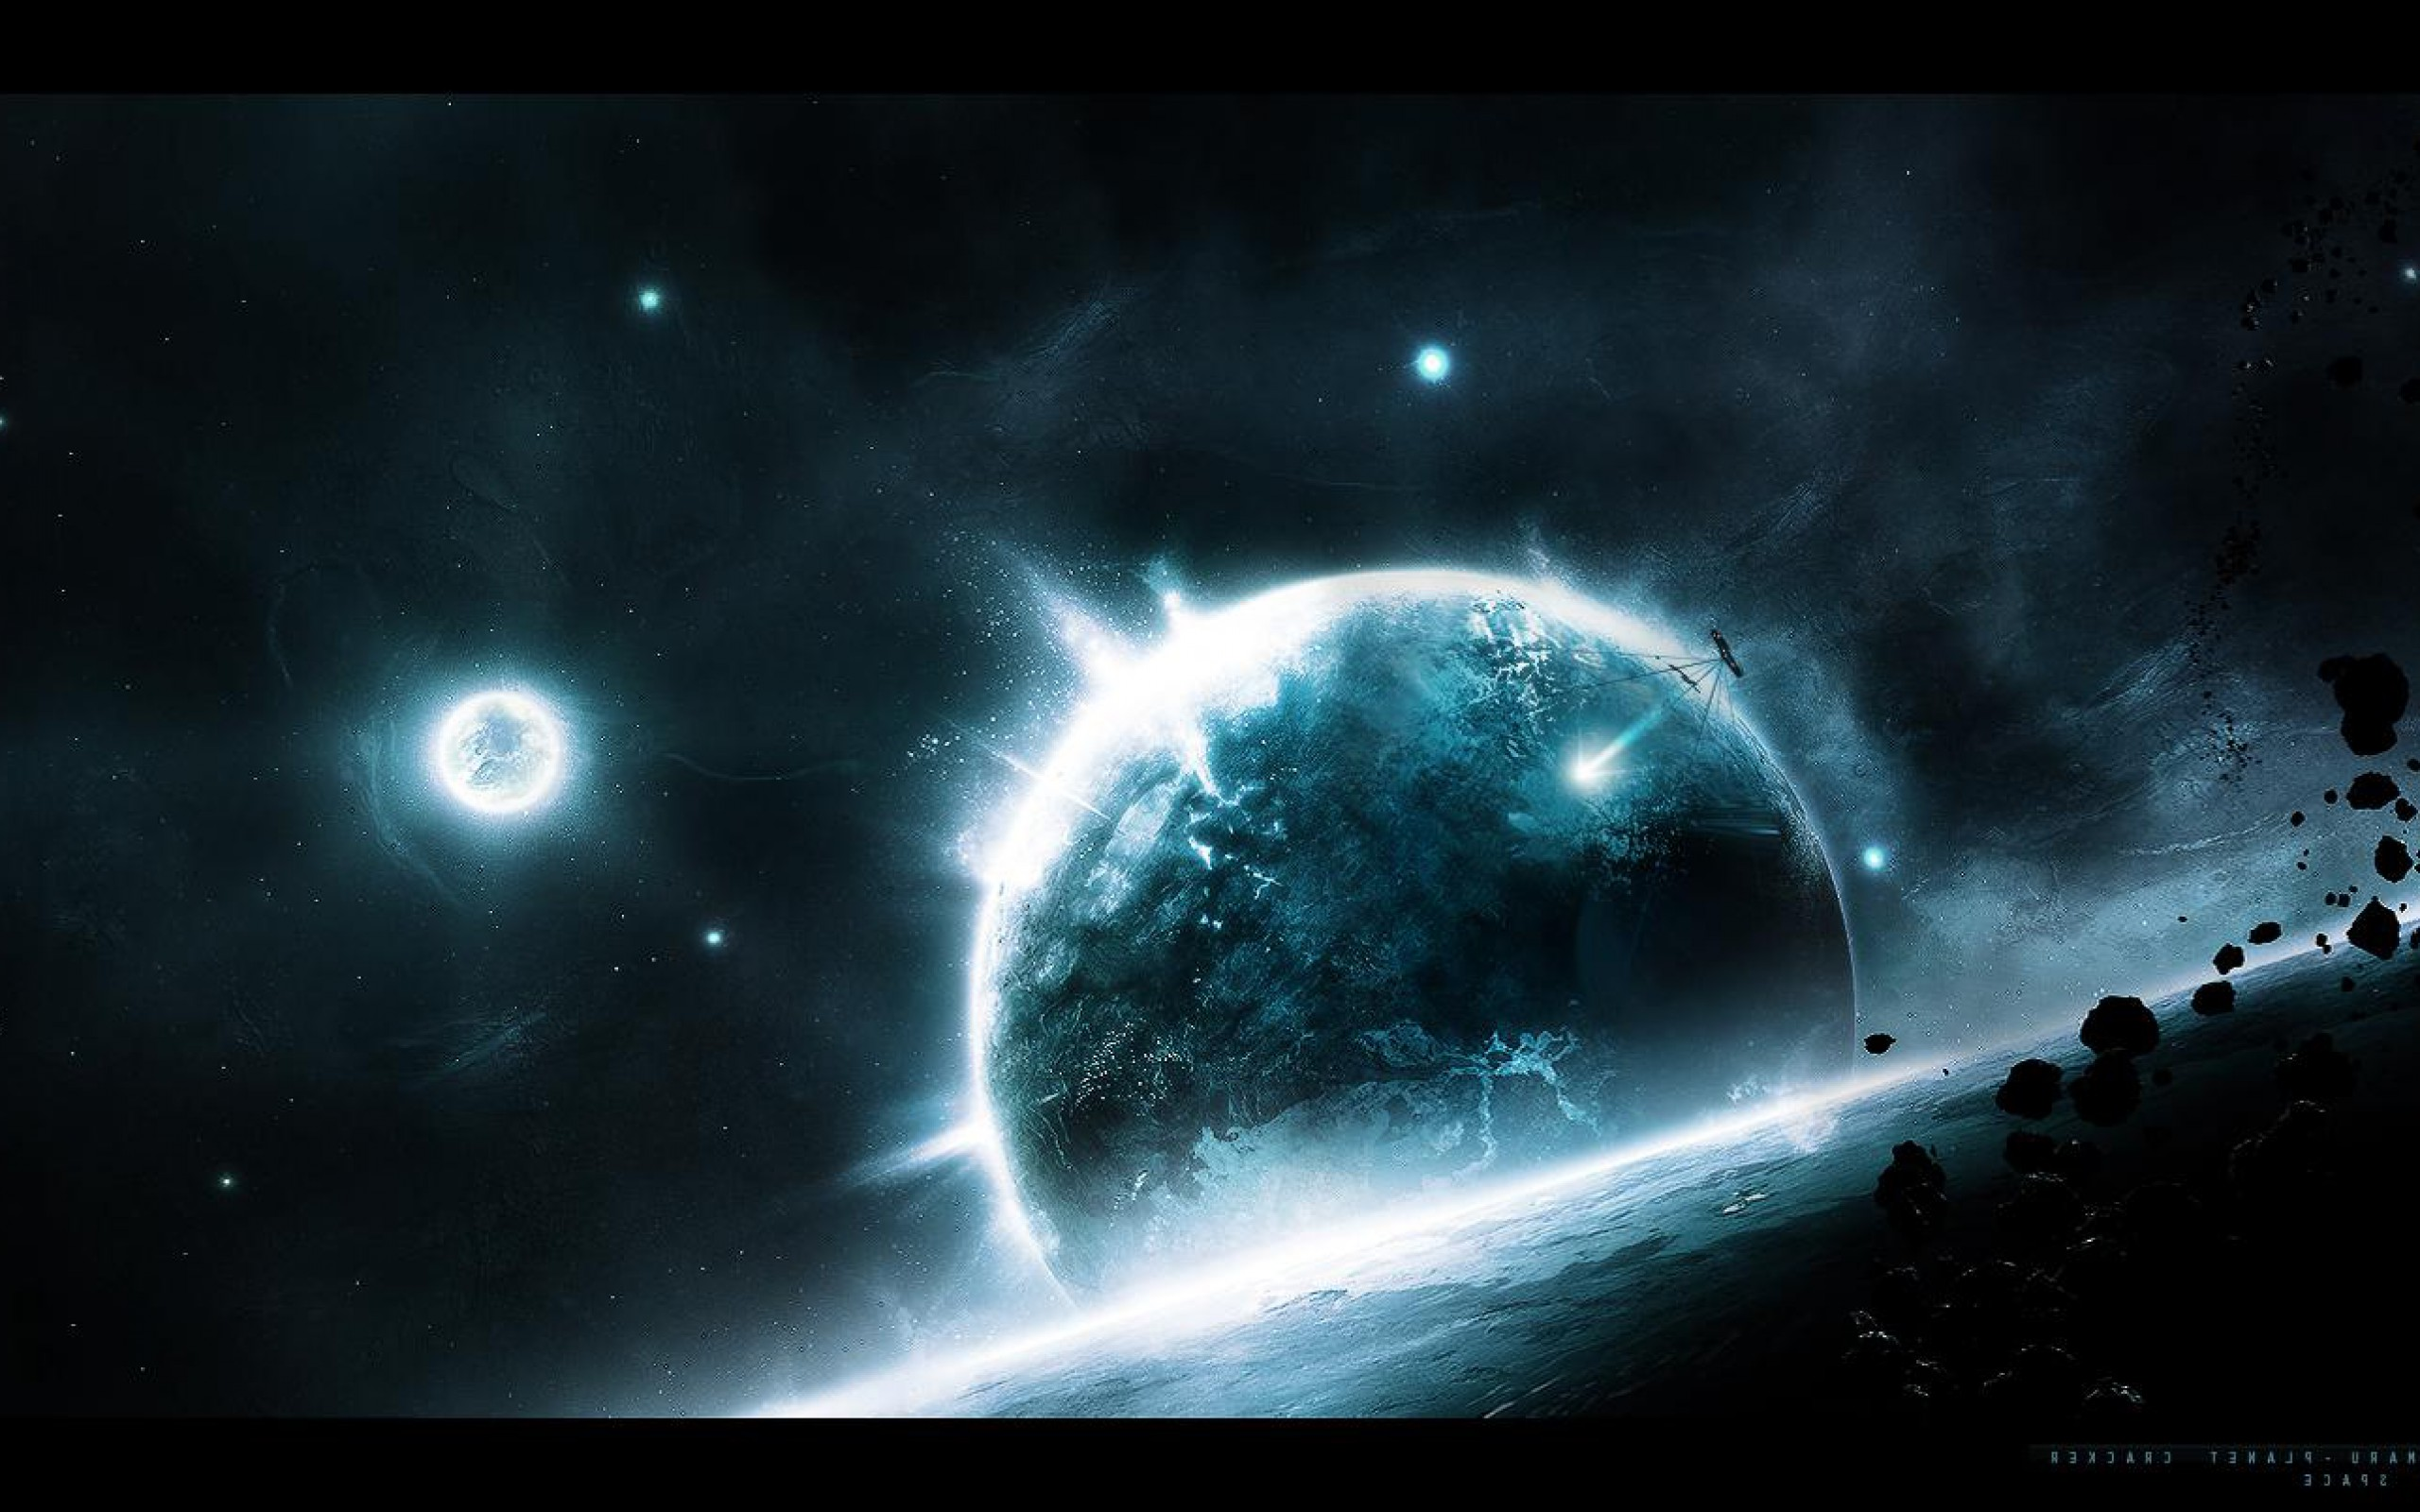 Free Download Hd Sci Fi Wallpaper 1104880 2560x1600 For